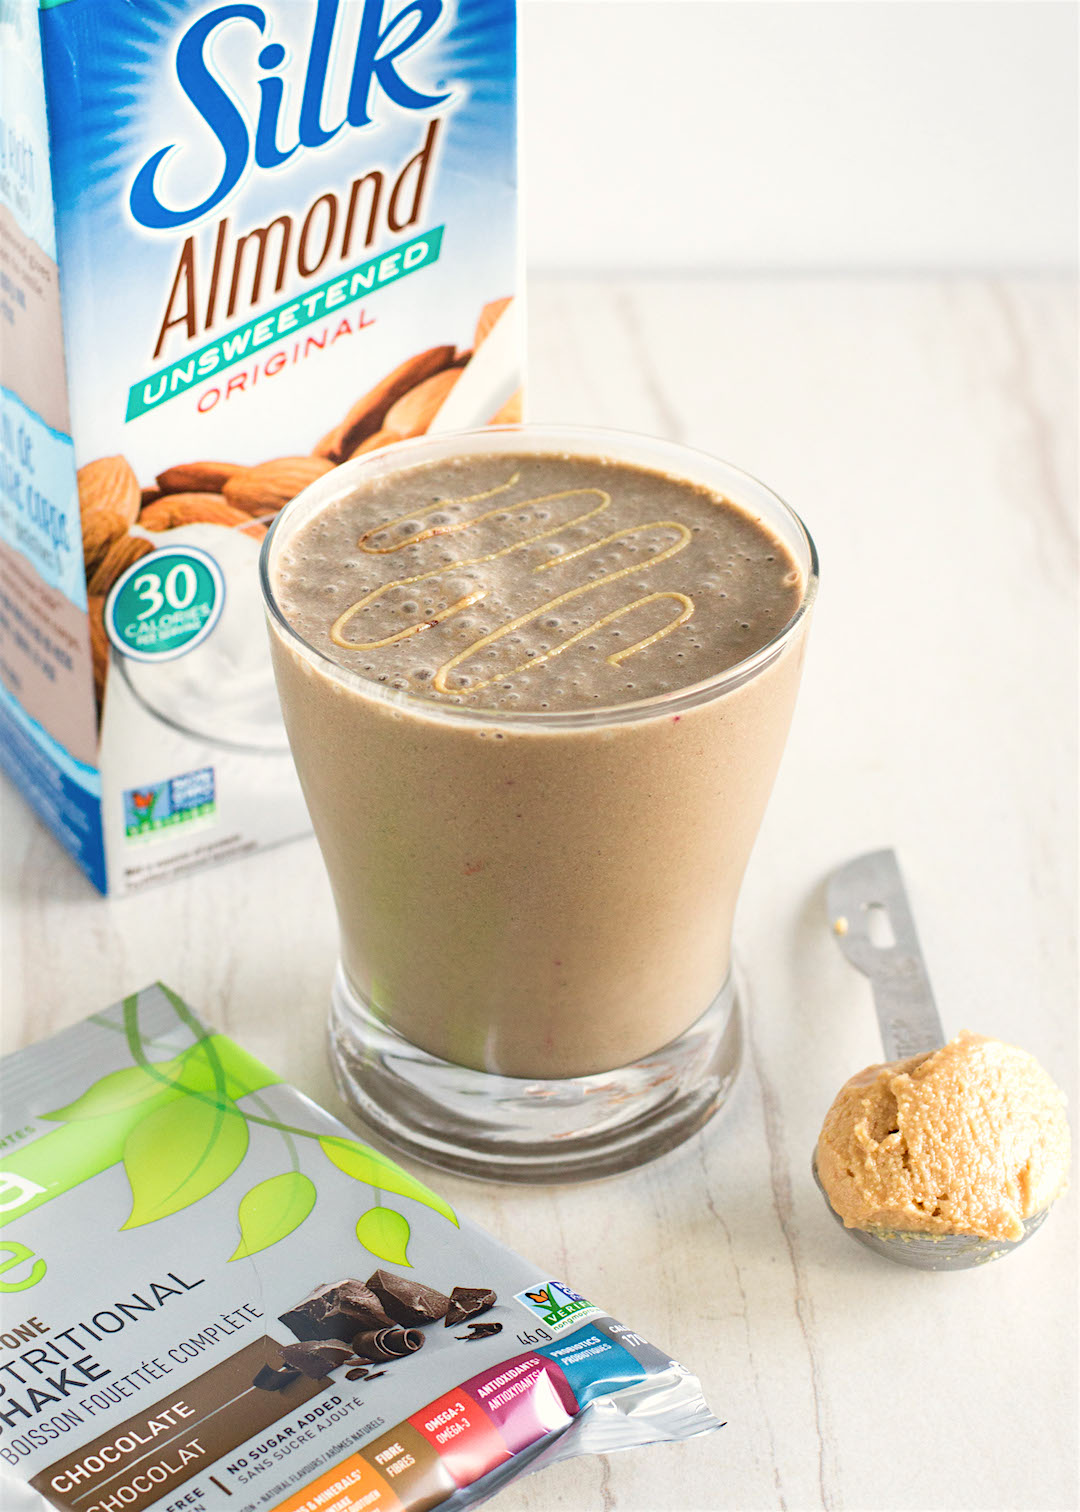 This creamy Chocolate Peanut Butter Protein Smoothie is made gluten free, vegan and protein-packed! It's the perfect combination of all things chocolate, peanut butter and banana! Try it for breakfast OR dessert!